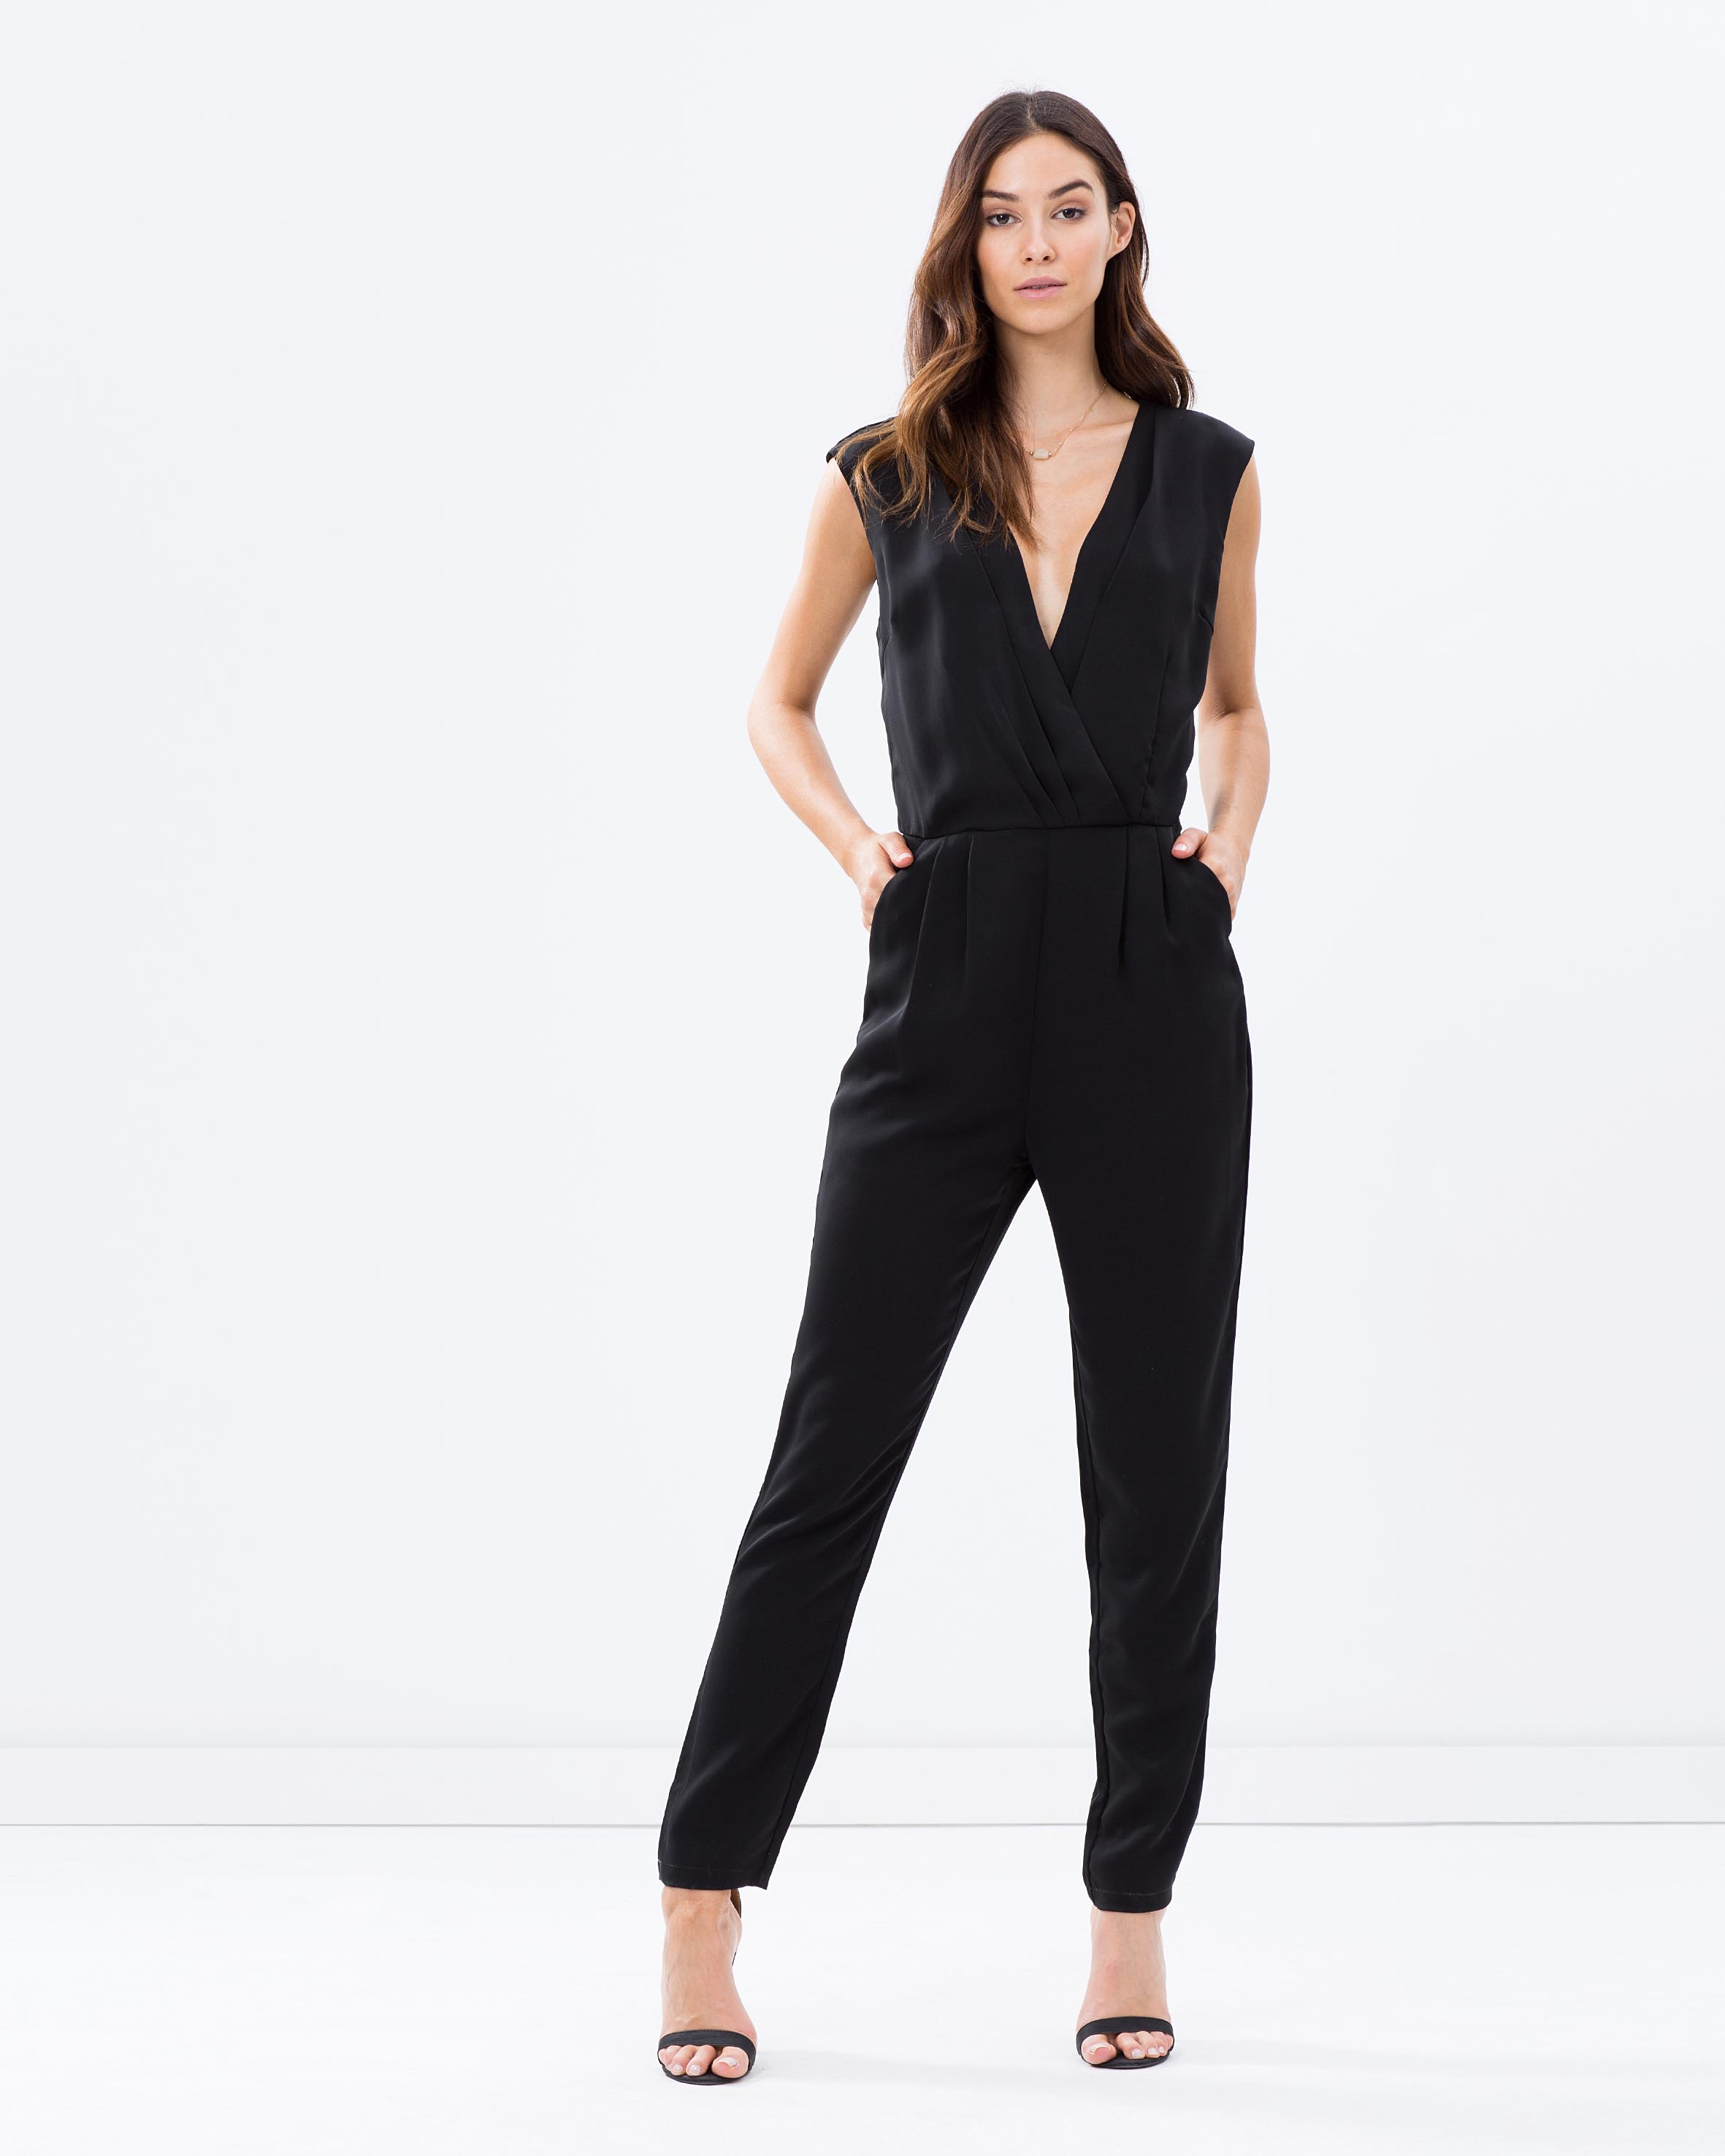 Women Jumpsuit With New Images In Australia